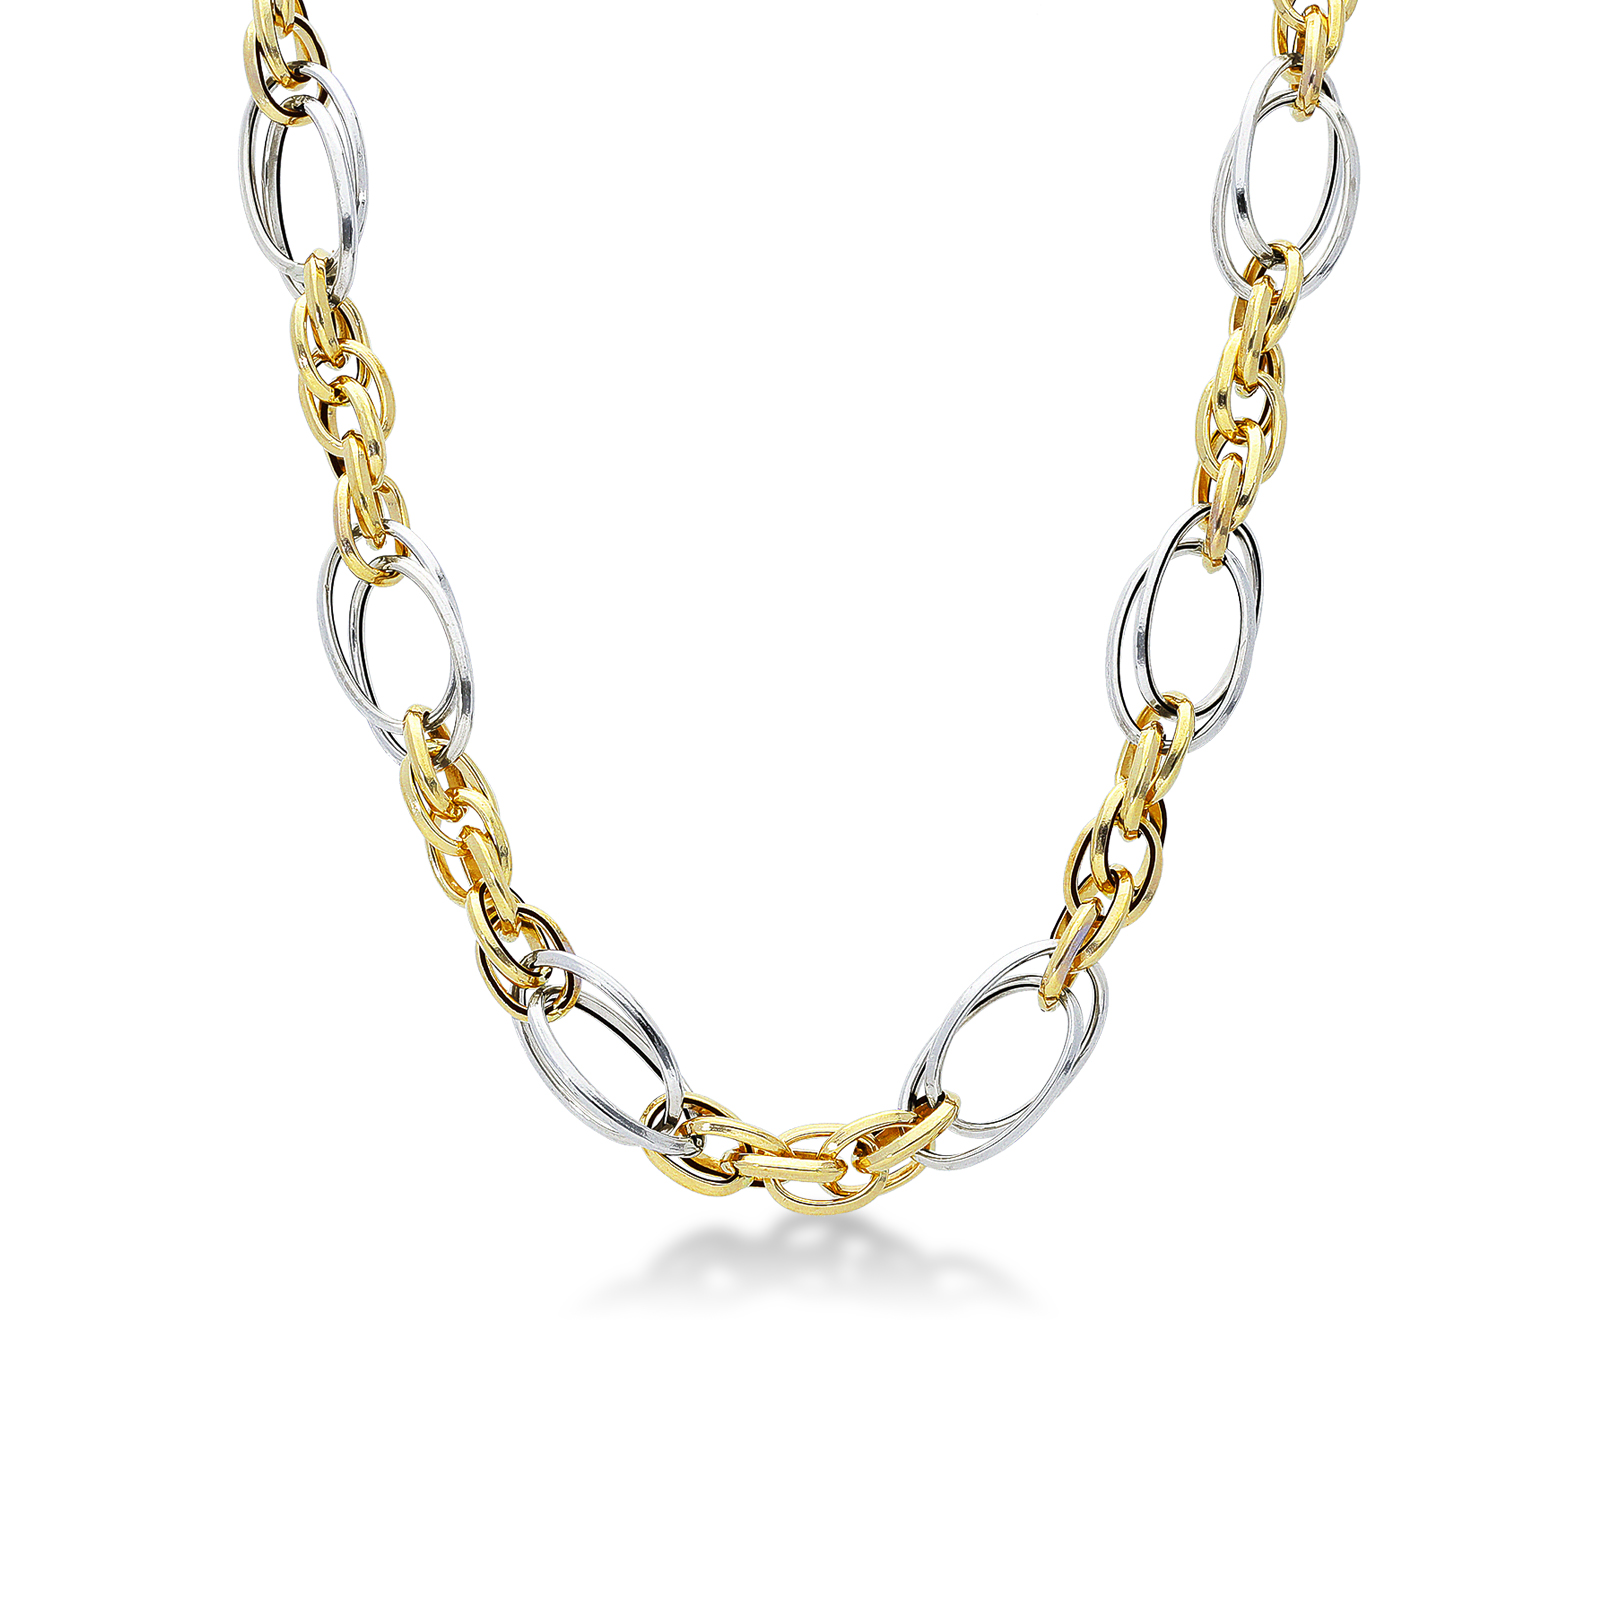 Necklace 18k White Gold, Gold with ring knit